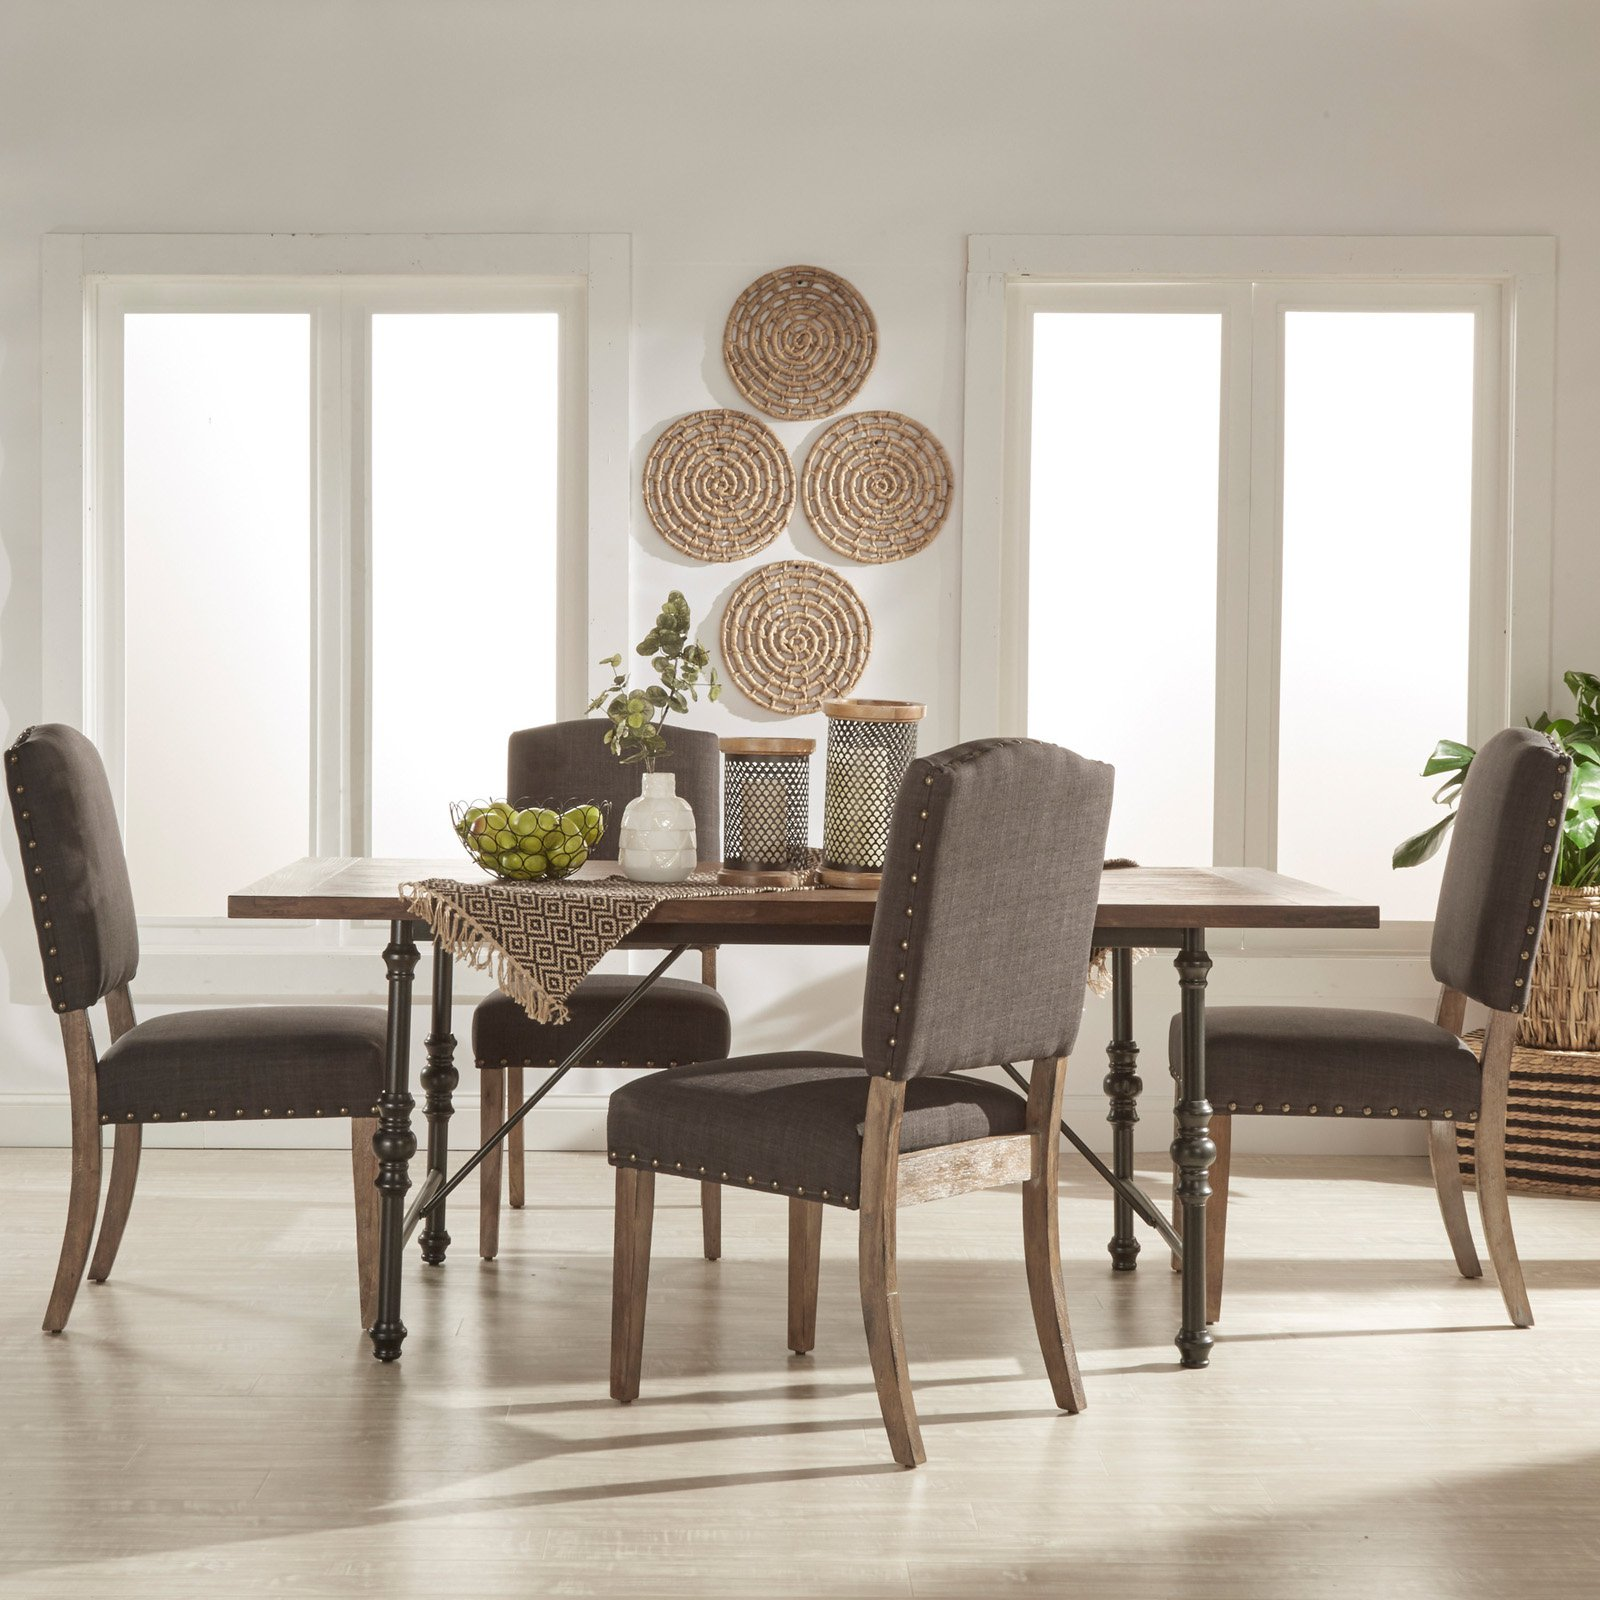 Weston Home 5 Piece Industrial Dining Set with Dark Gray Chairs